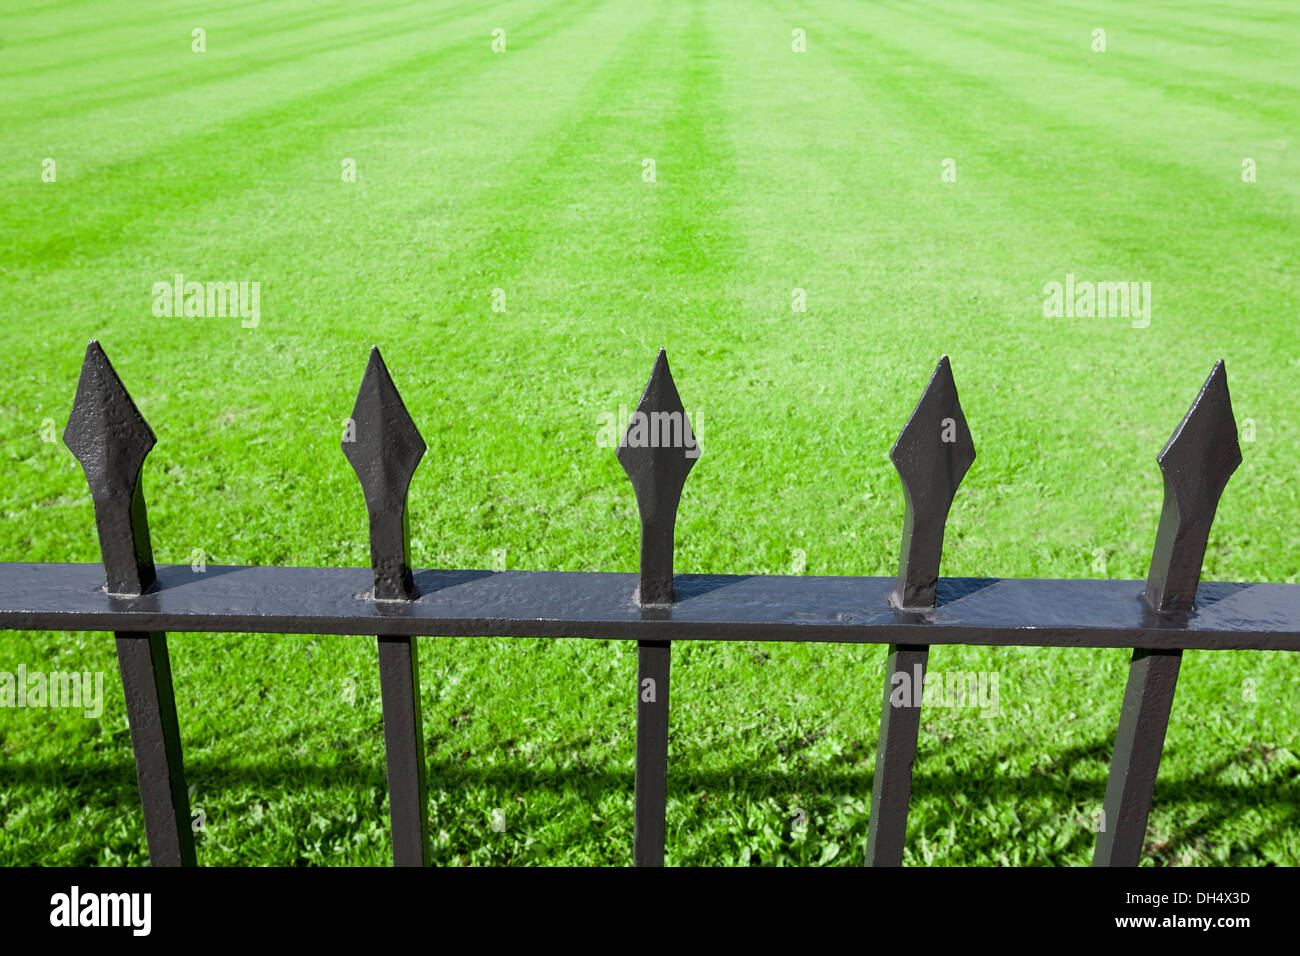 Close-up of iron railings with a grassy background. - Stock Image